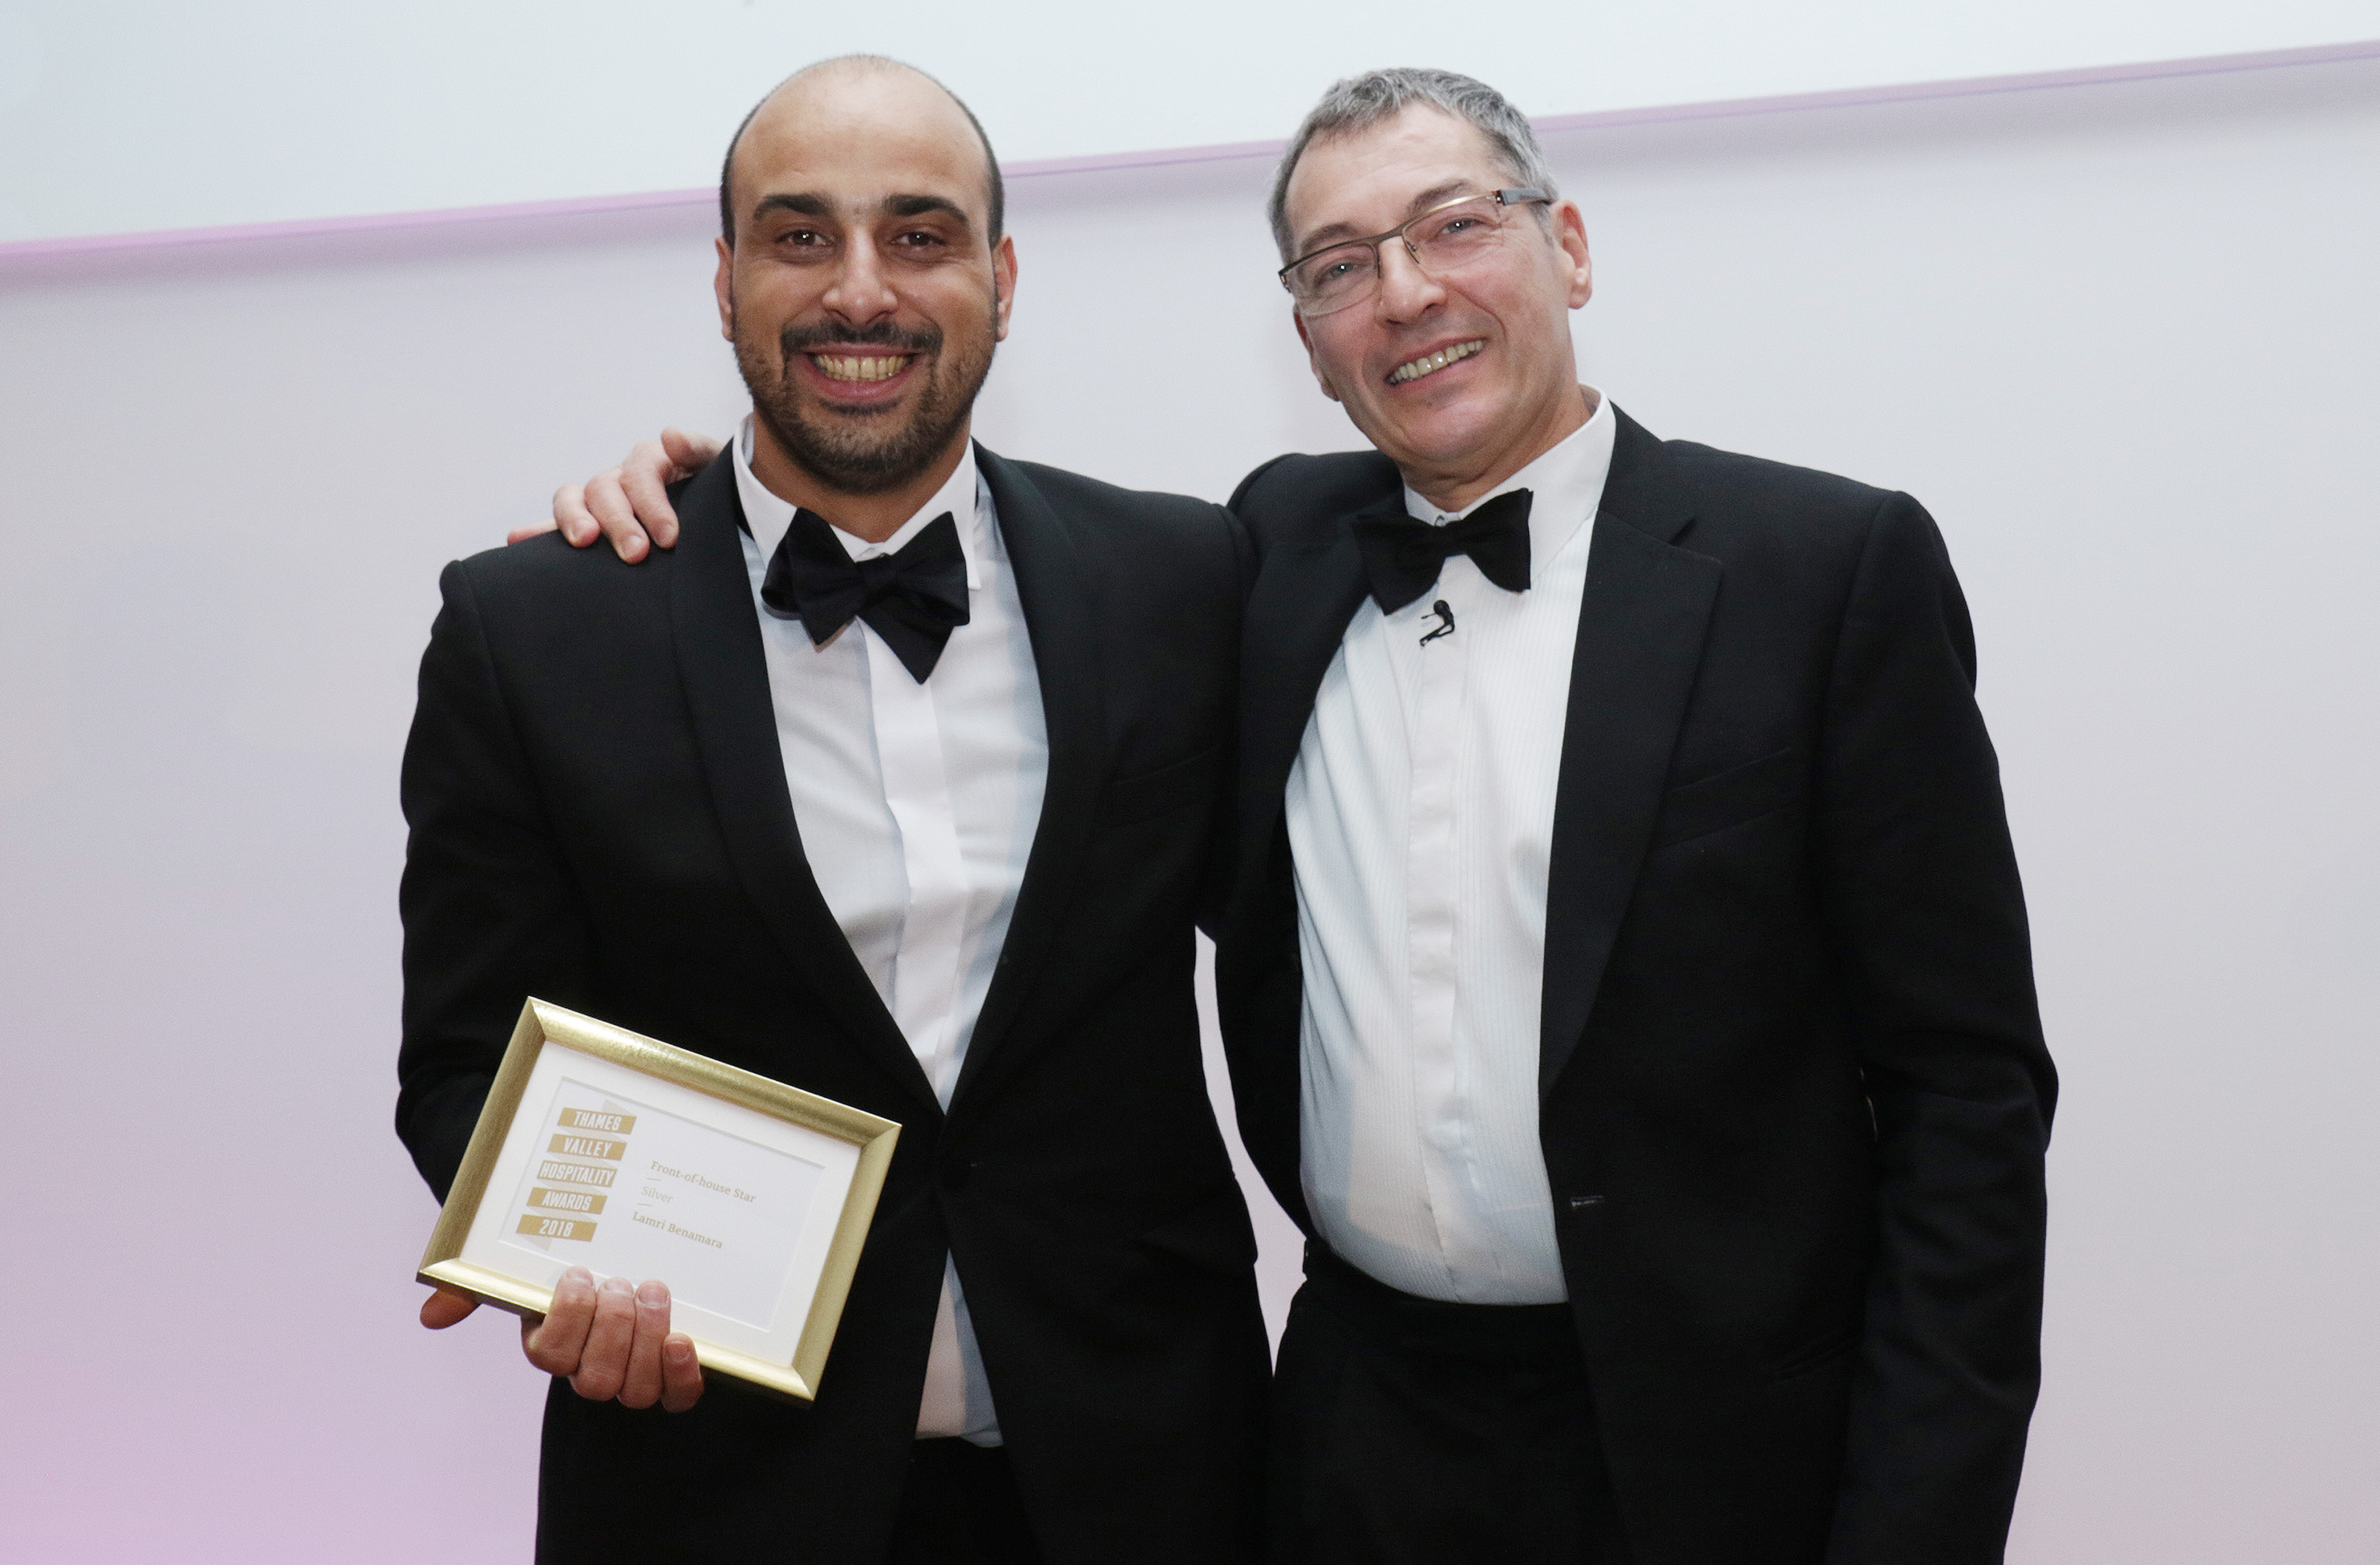 Lamri Benamara of Sanpa in wokingham picks up silver for Front-of-House star